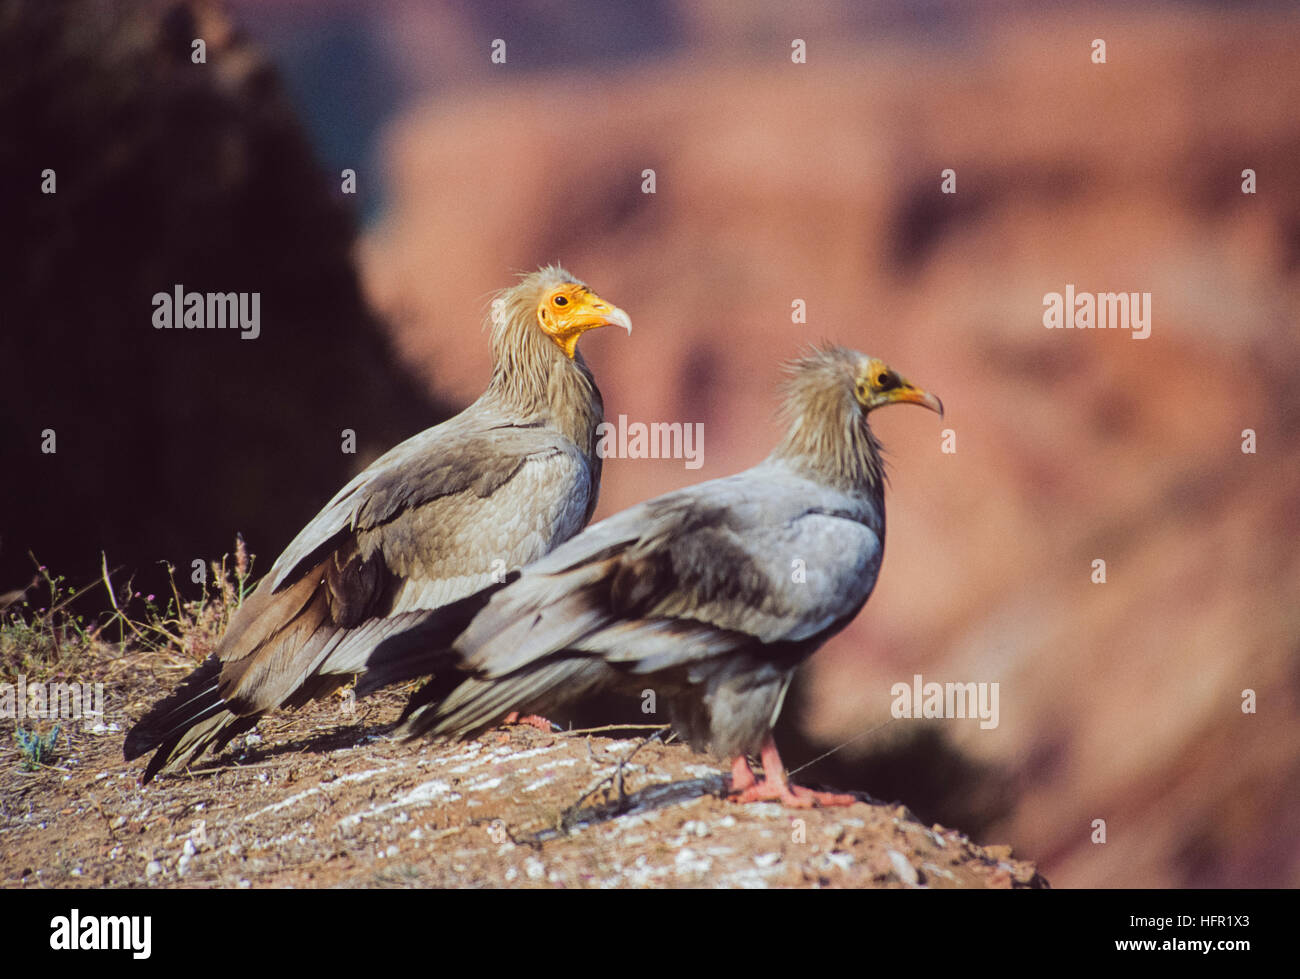 Egyptian Vultures,(Neophron percnopterus), two adult birds perched at roosting site on cliff edge,Bharatpur,Rajasthan,India - Stock Image